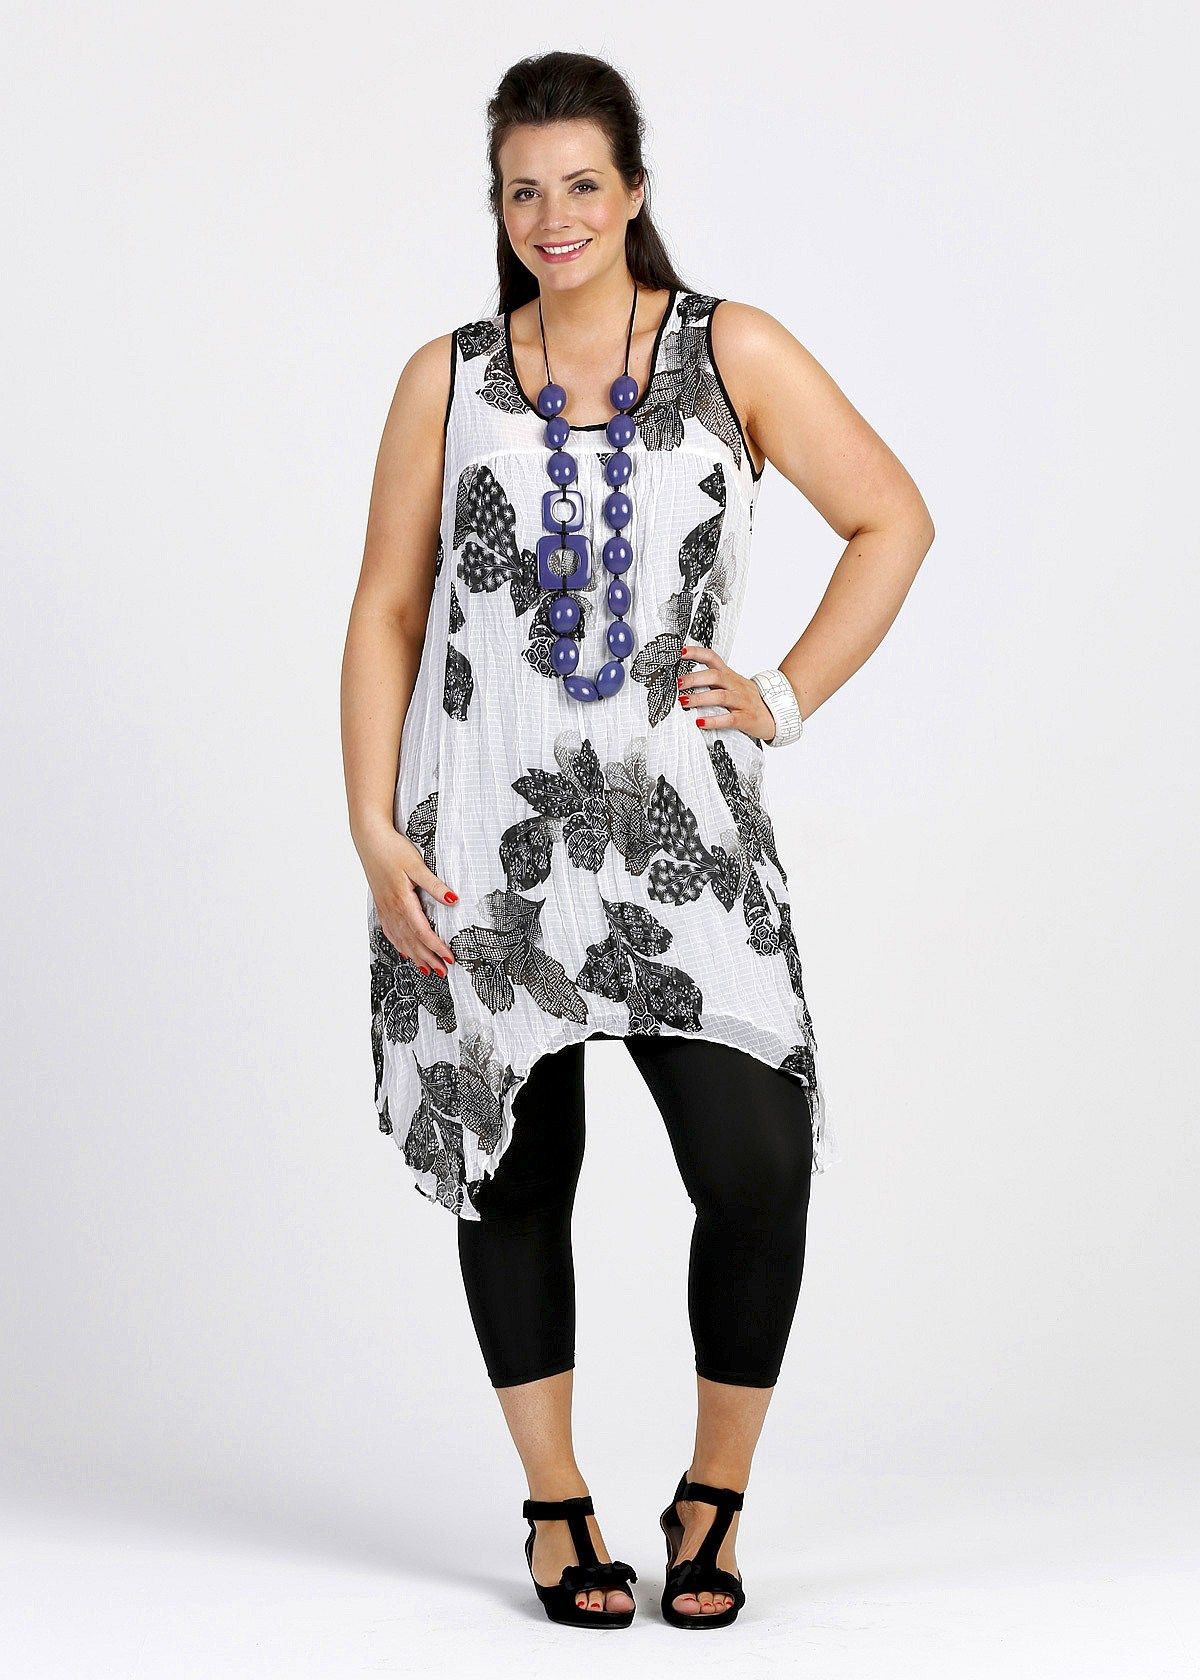 Clothes For Larger Size Women